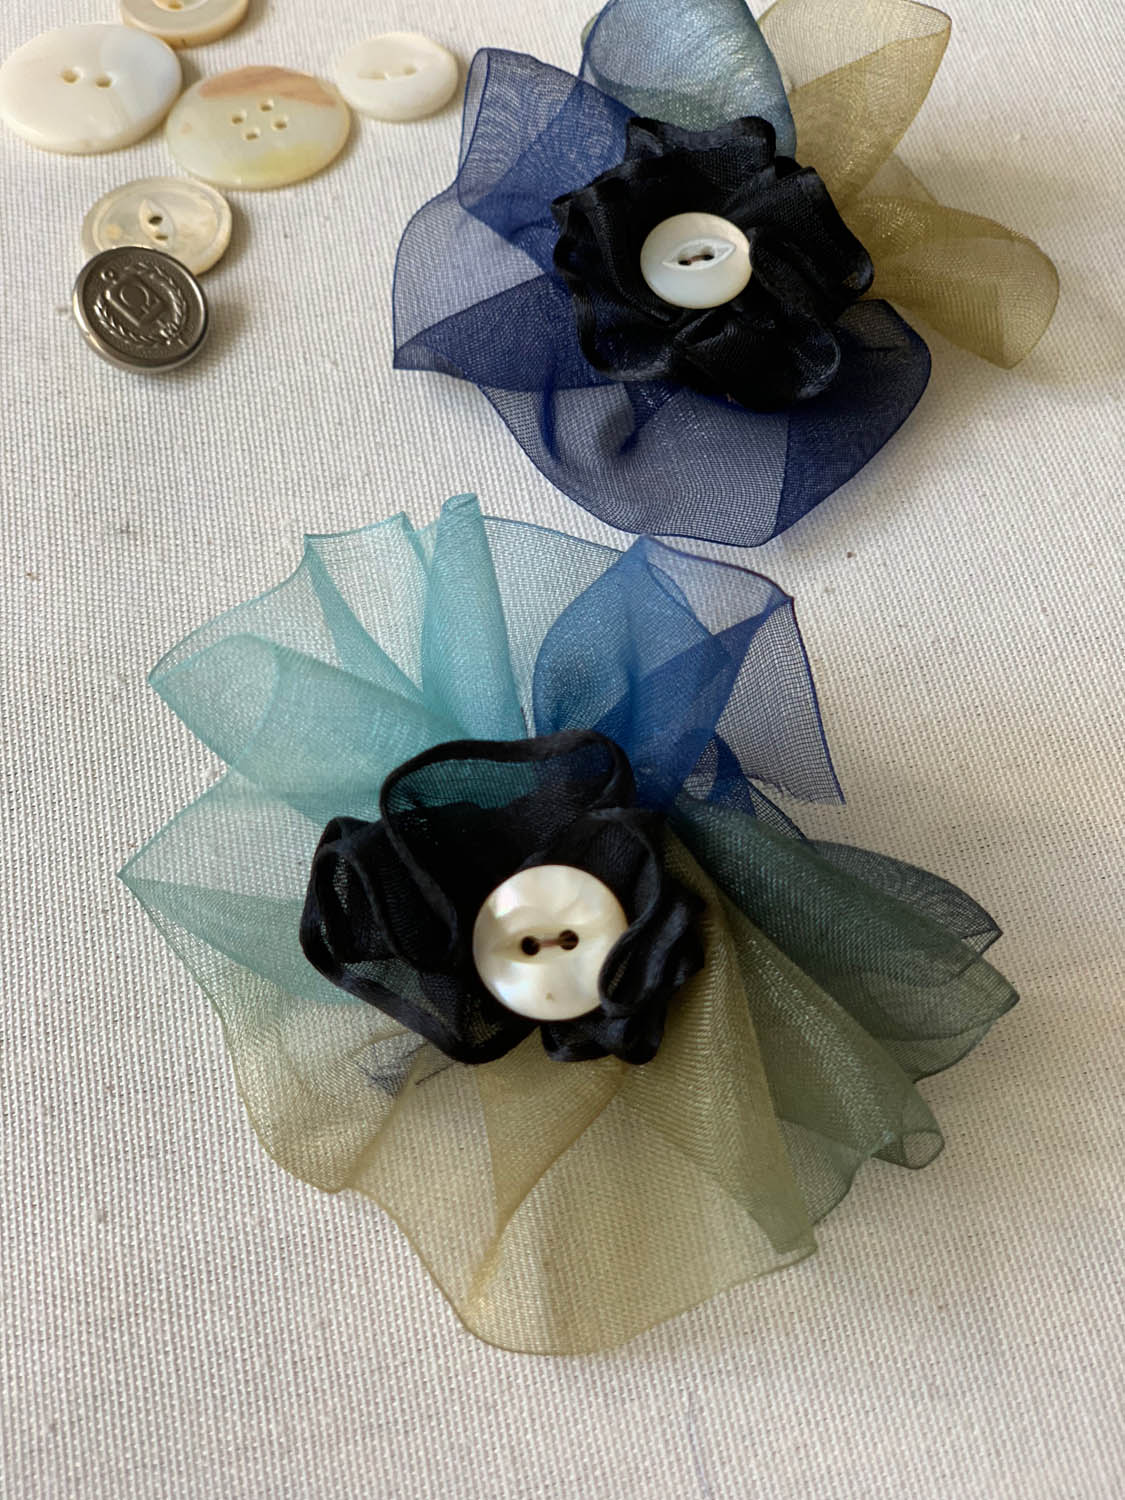 completed silk ribbon flowers with button embellishments